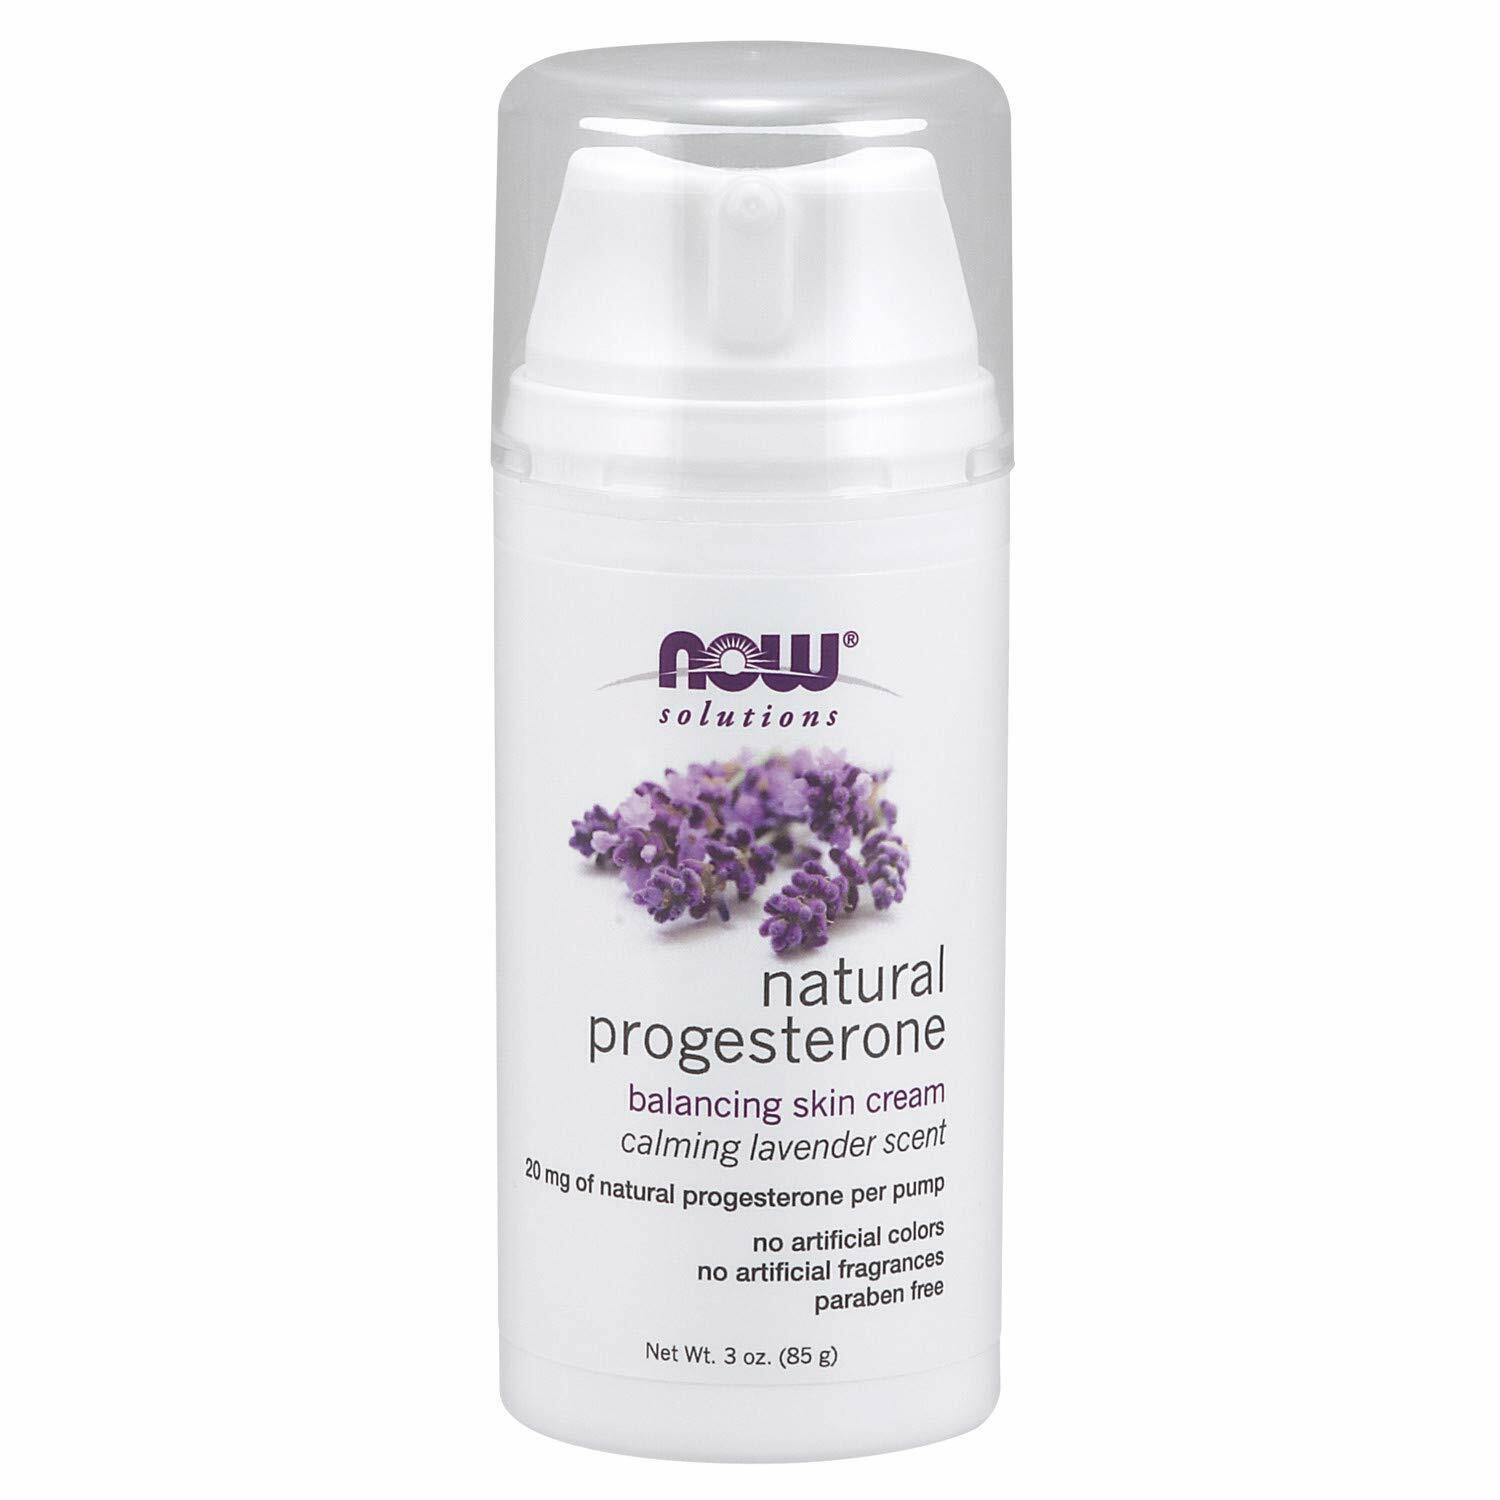 Now Foods Natural Progesterone Cream Calming Lavender Scent